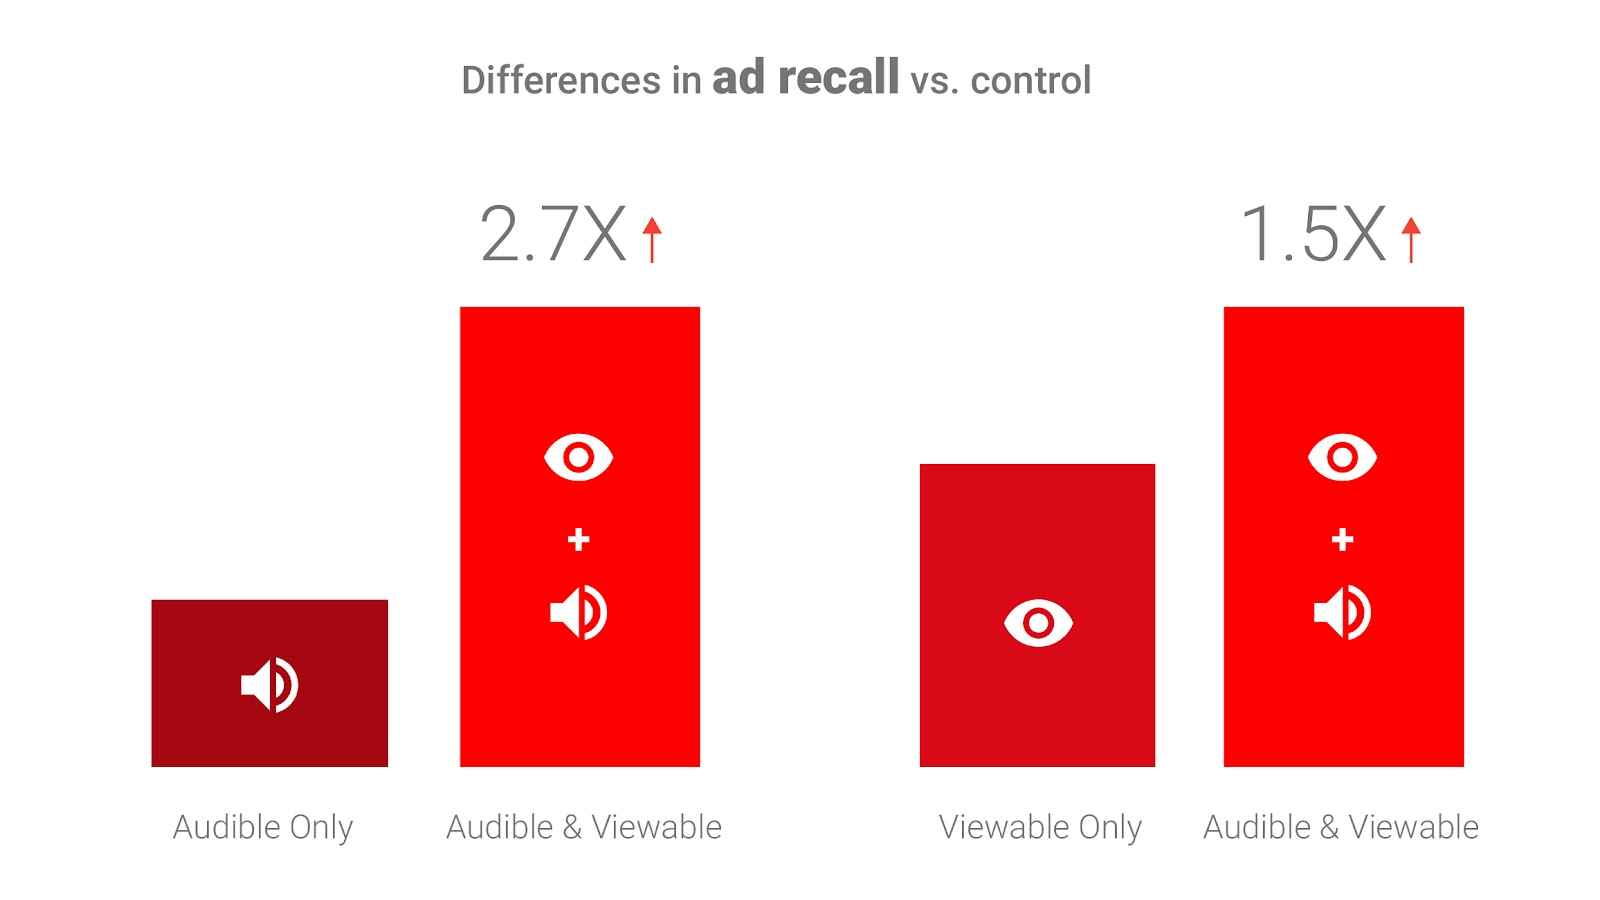 How-Viewability-and-Audibility-Affect-YouTube-Video-Ad-Effectiveness-R7-03.jpg